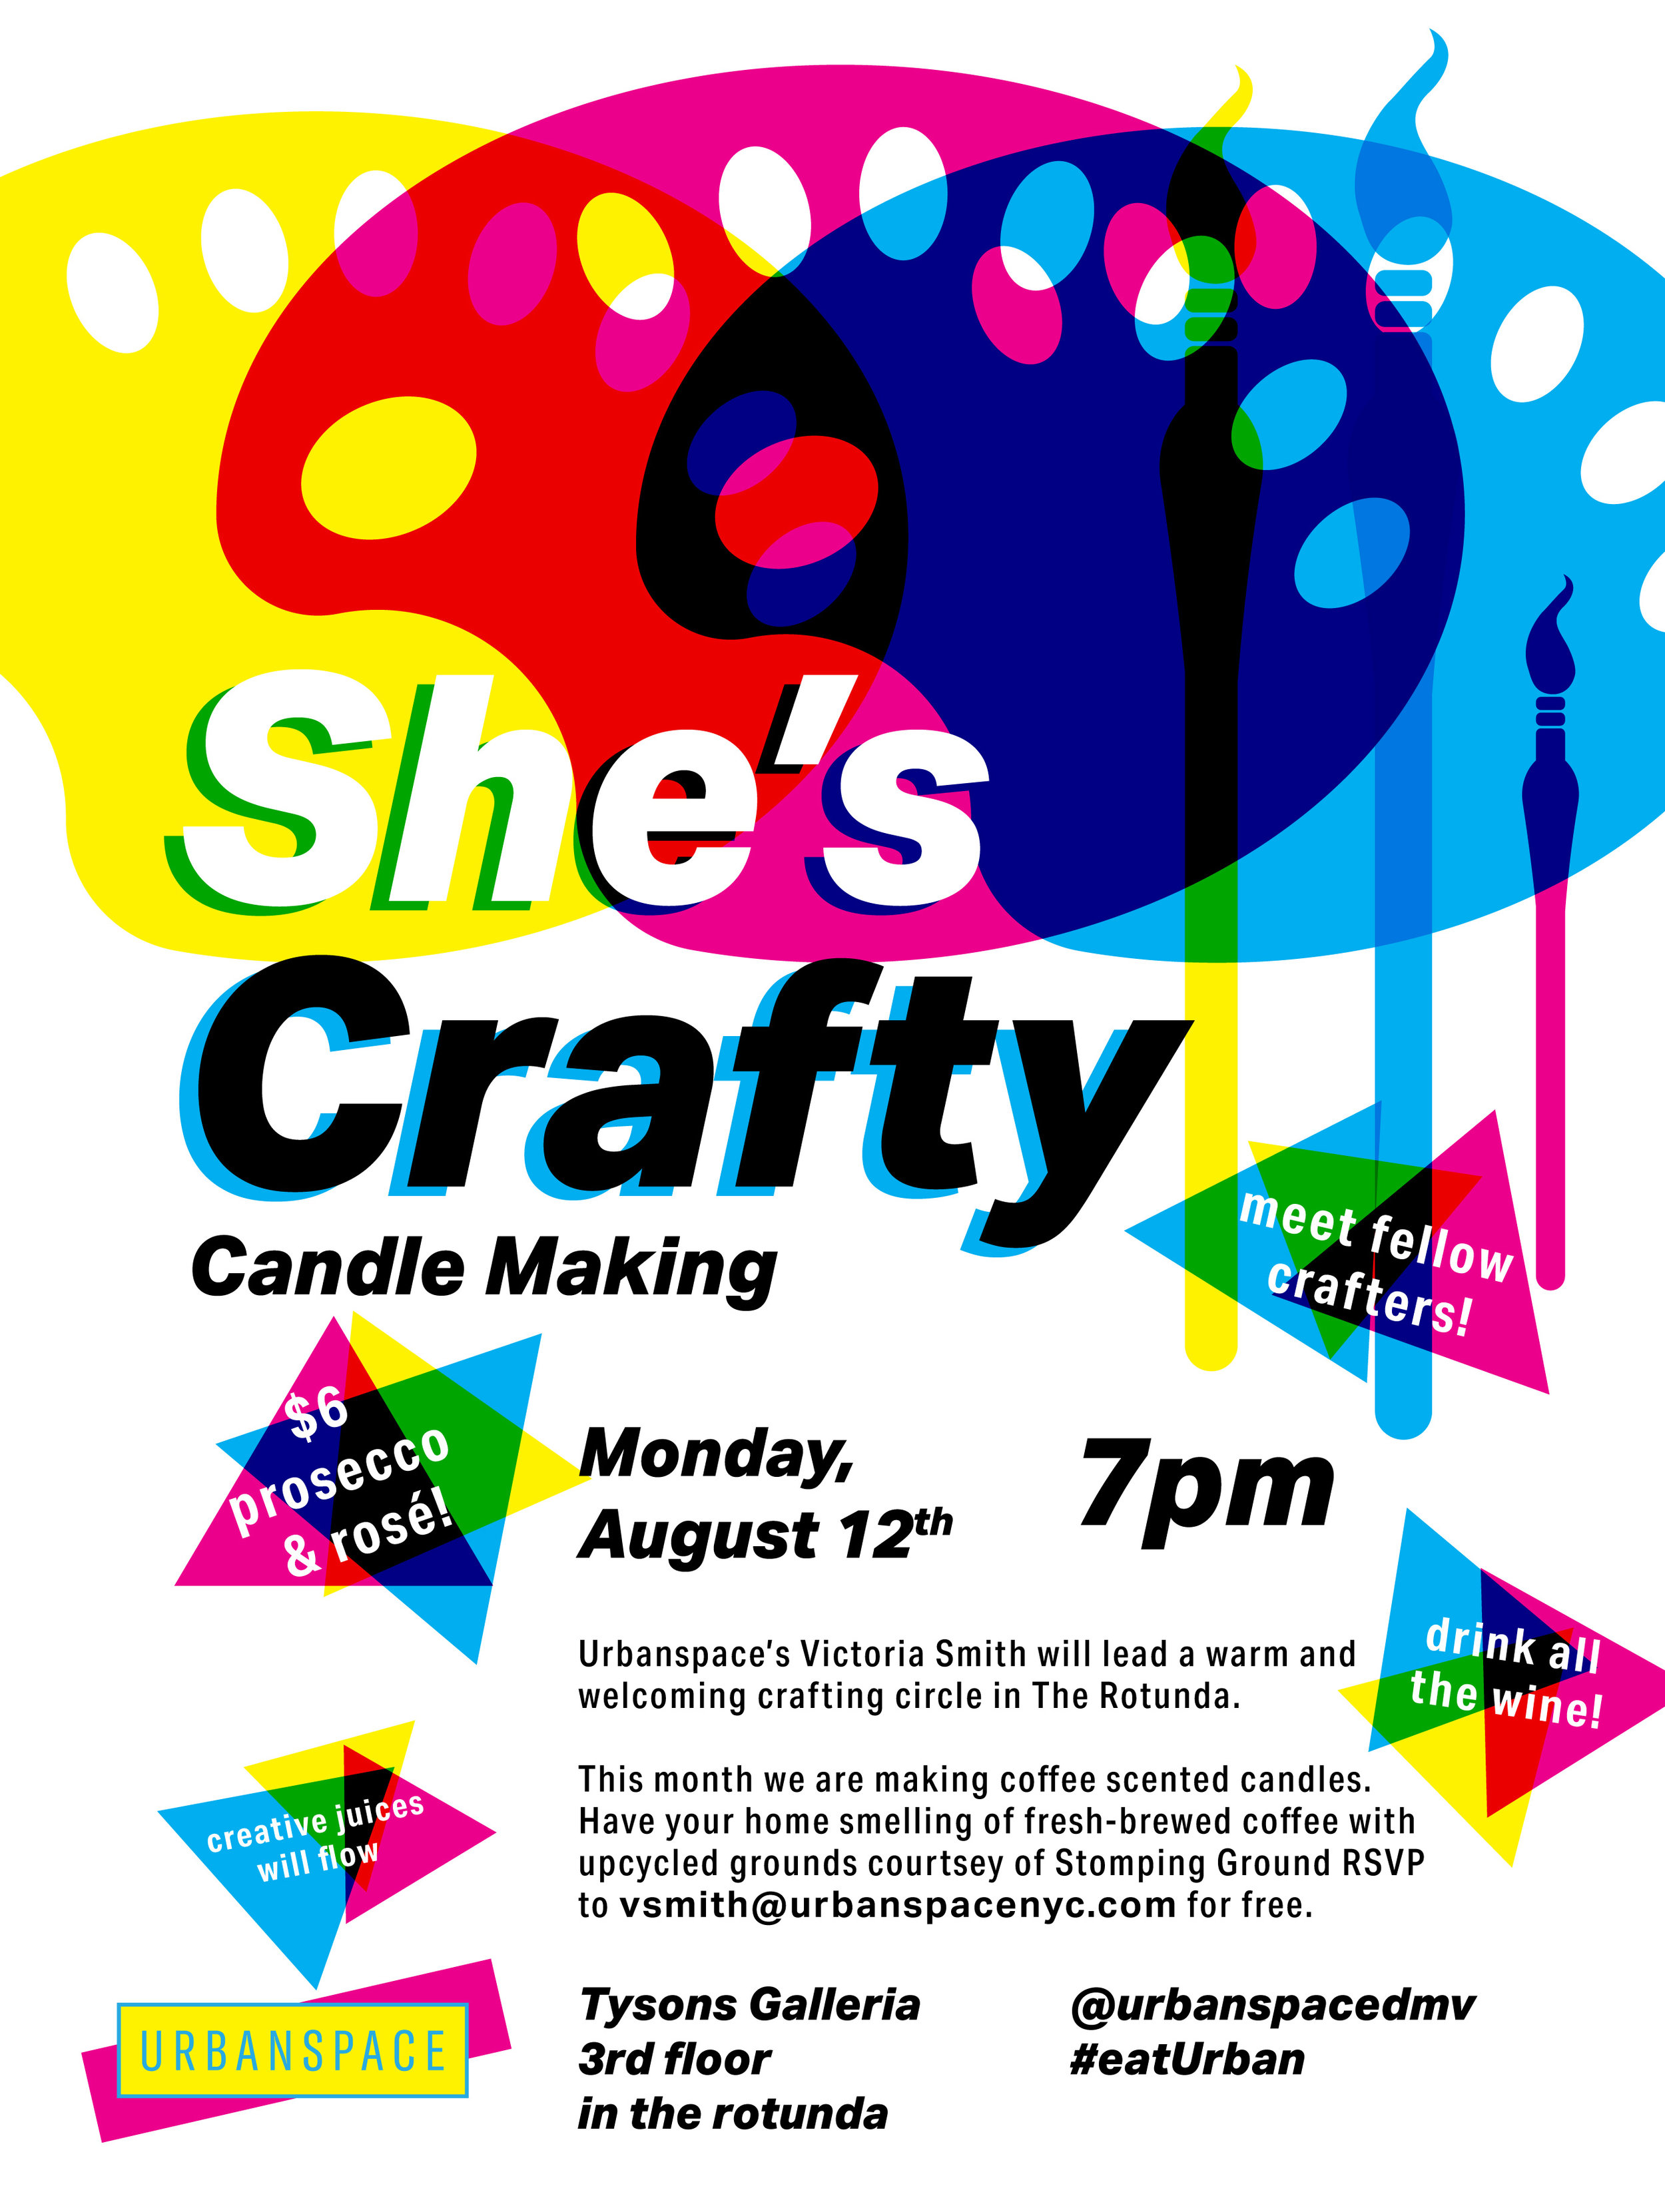 Shes Crafty Promo_Print Poster 18-x24-.jpg